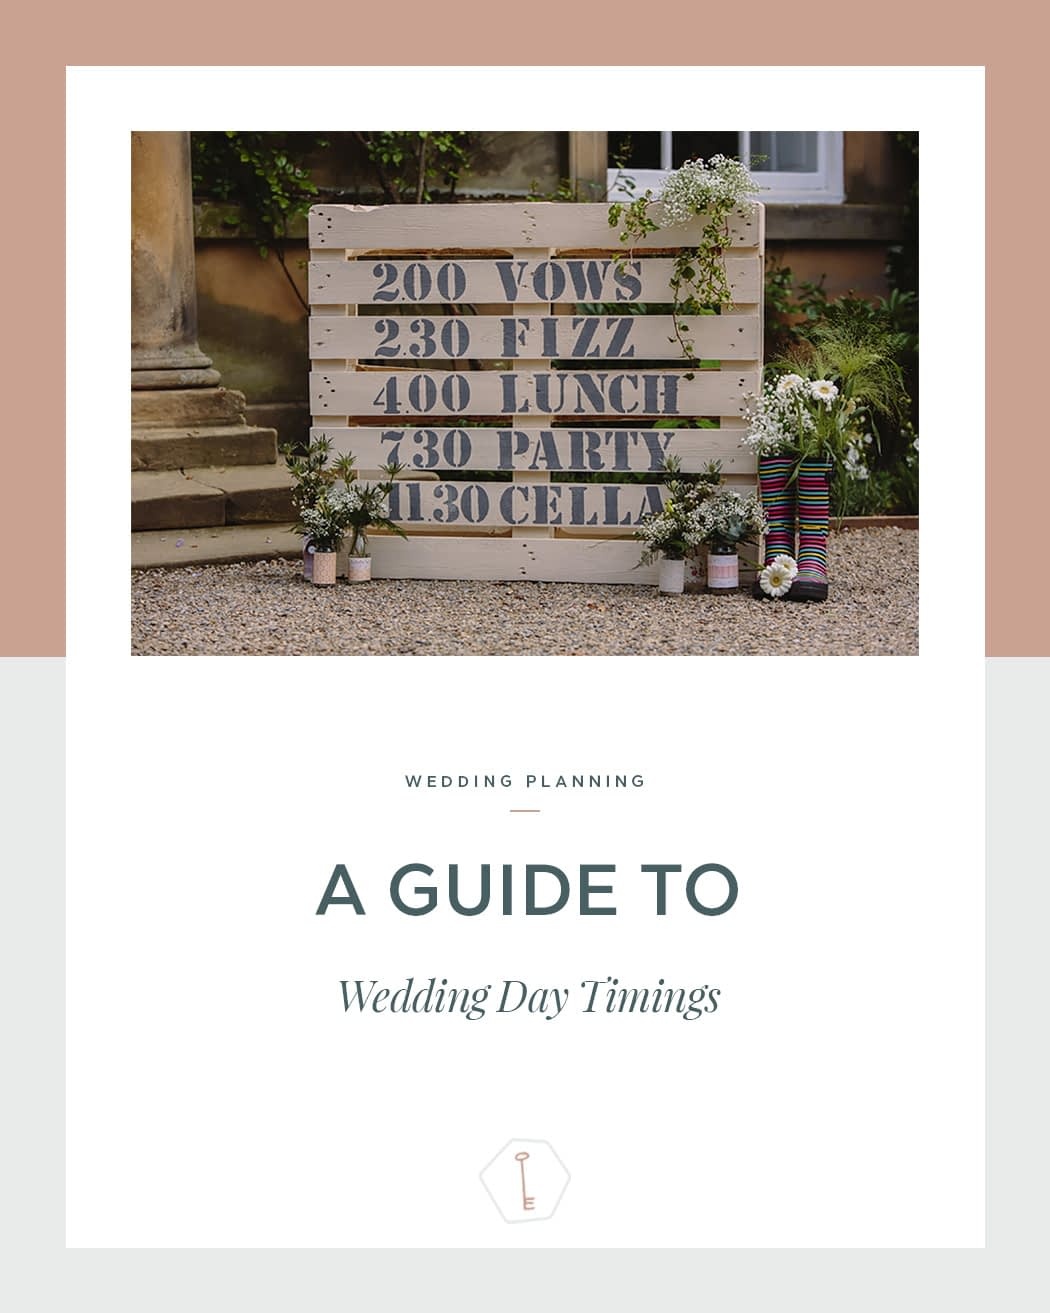 wedding-day-timings-poster